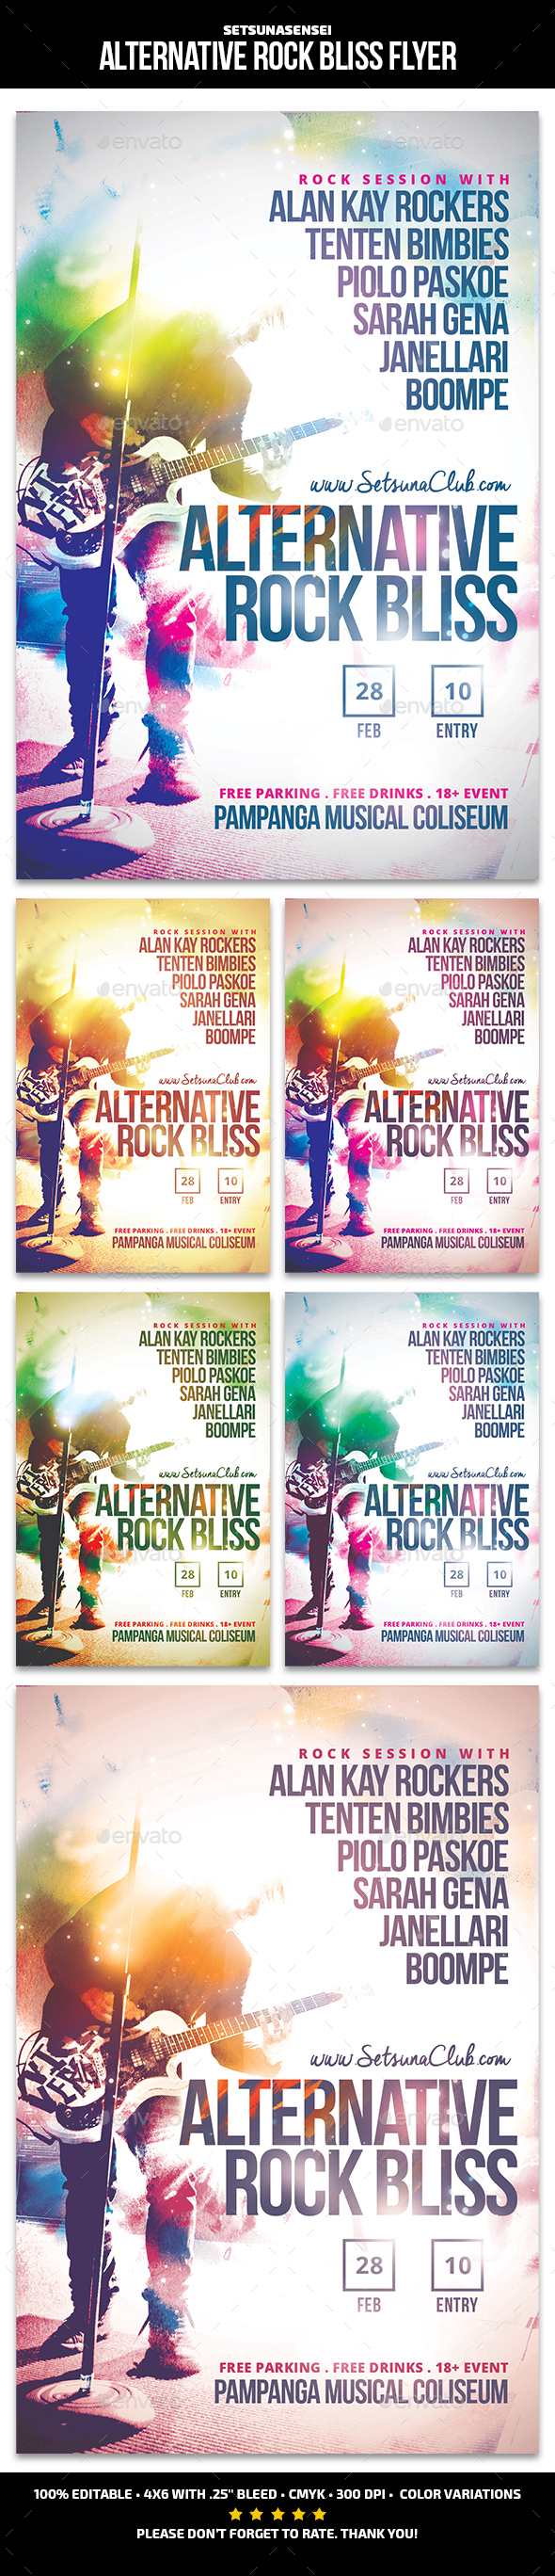 Alternative Rock Bliss Flyer - Concerts Events